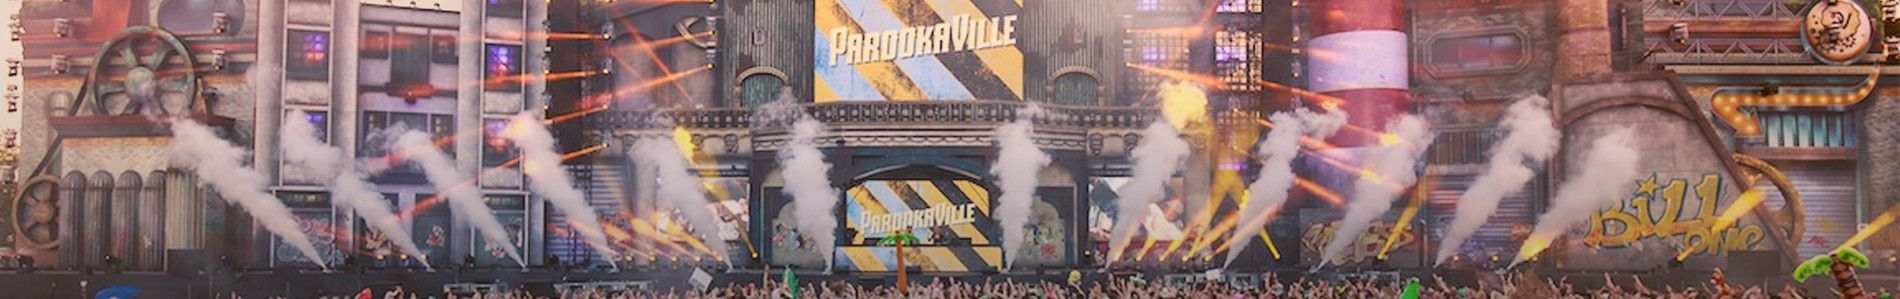 Spinnin' Sessions Spinnin' Sessions x Parookaville 2017